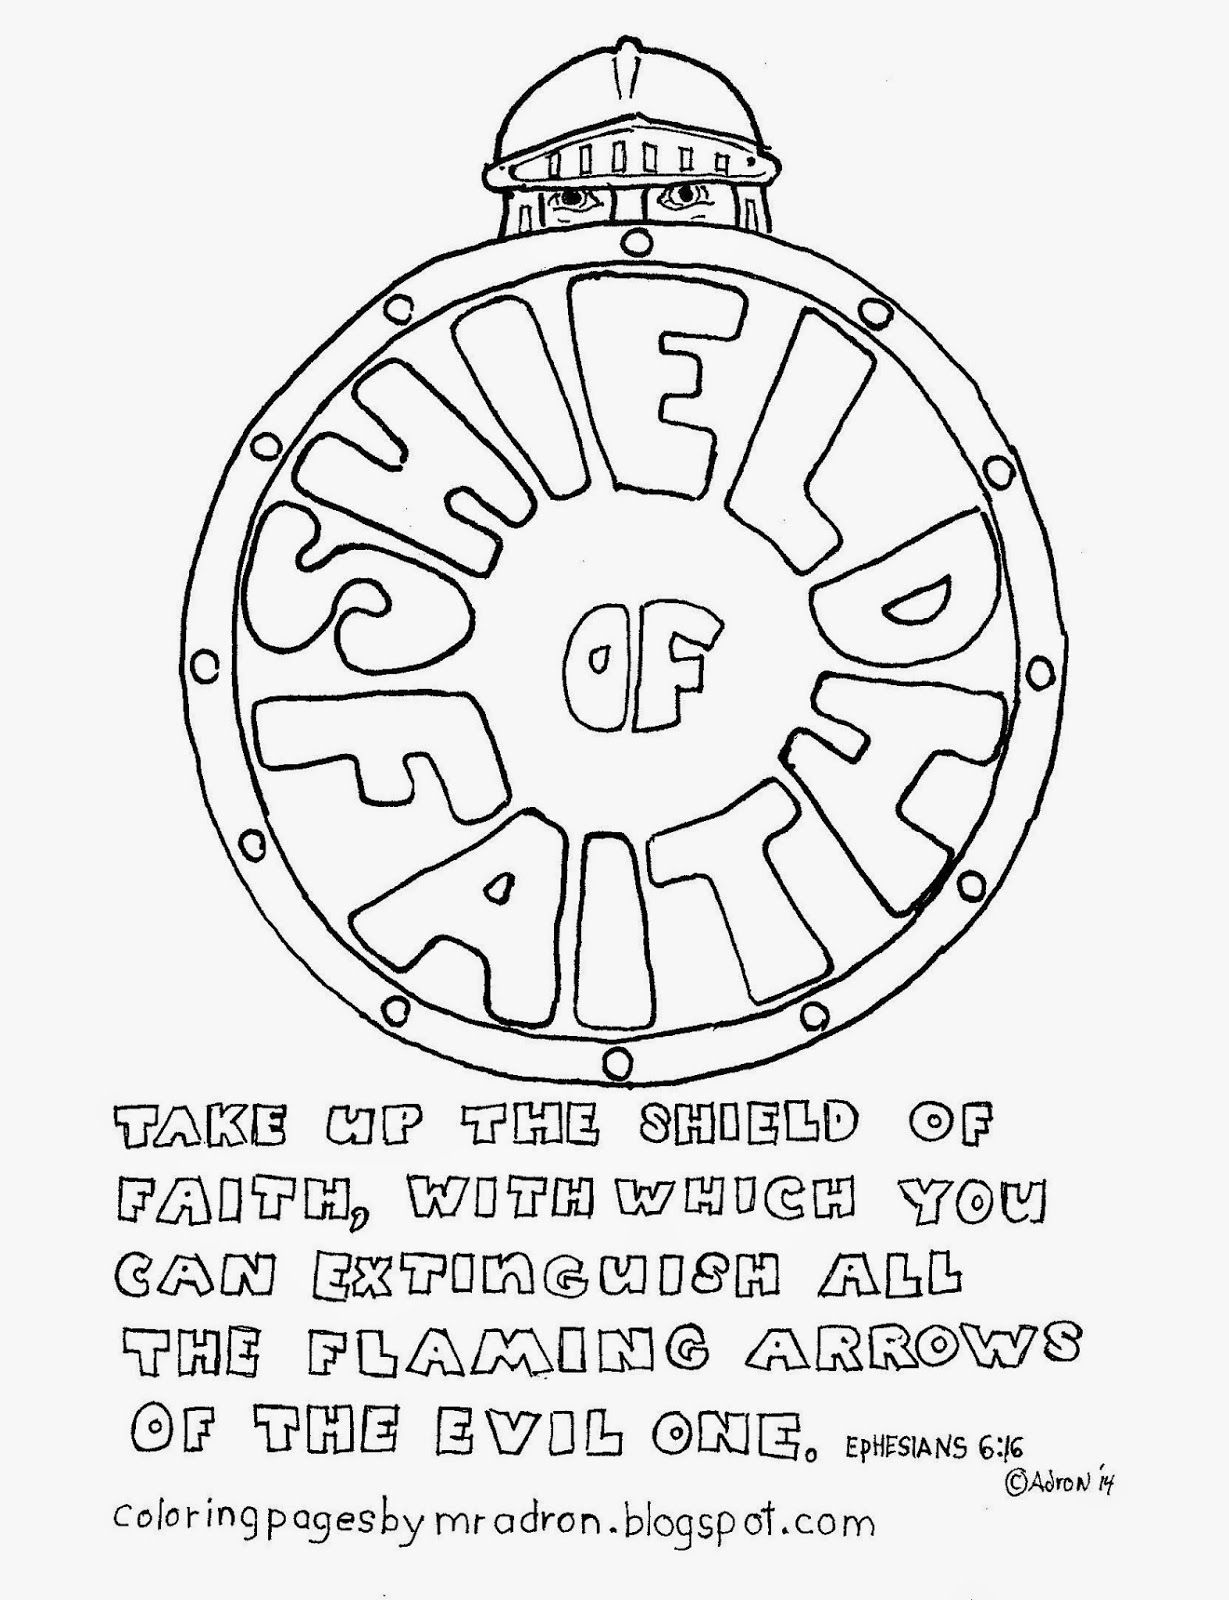 Coloring Pages For Kids By Mr Adron: The Shield Of Faith